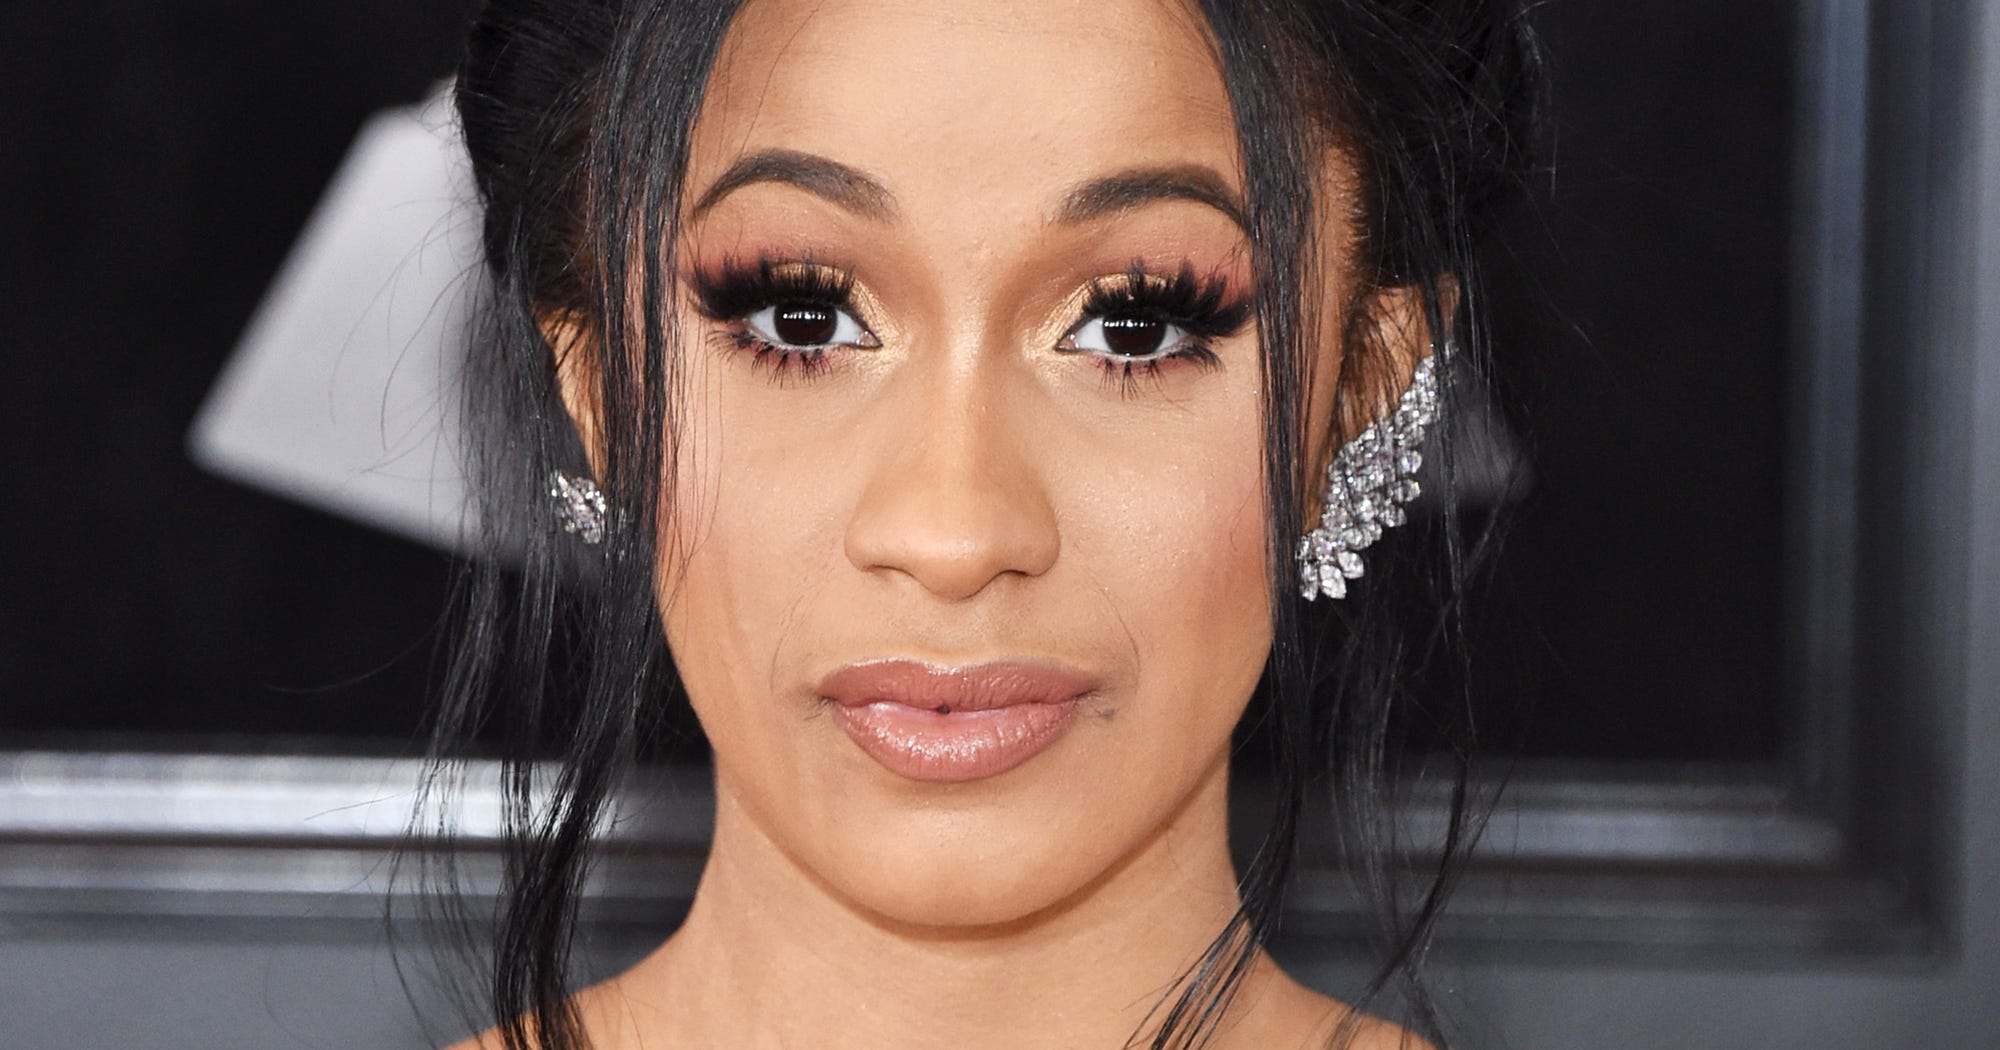 Cardi B Before Fame: Cardi B Says She Was Happier Before She Was Famous